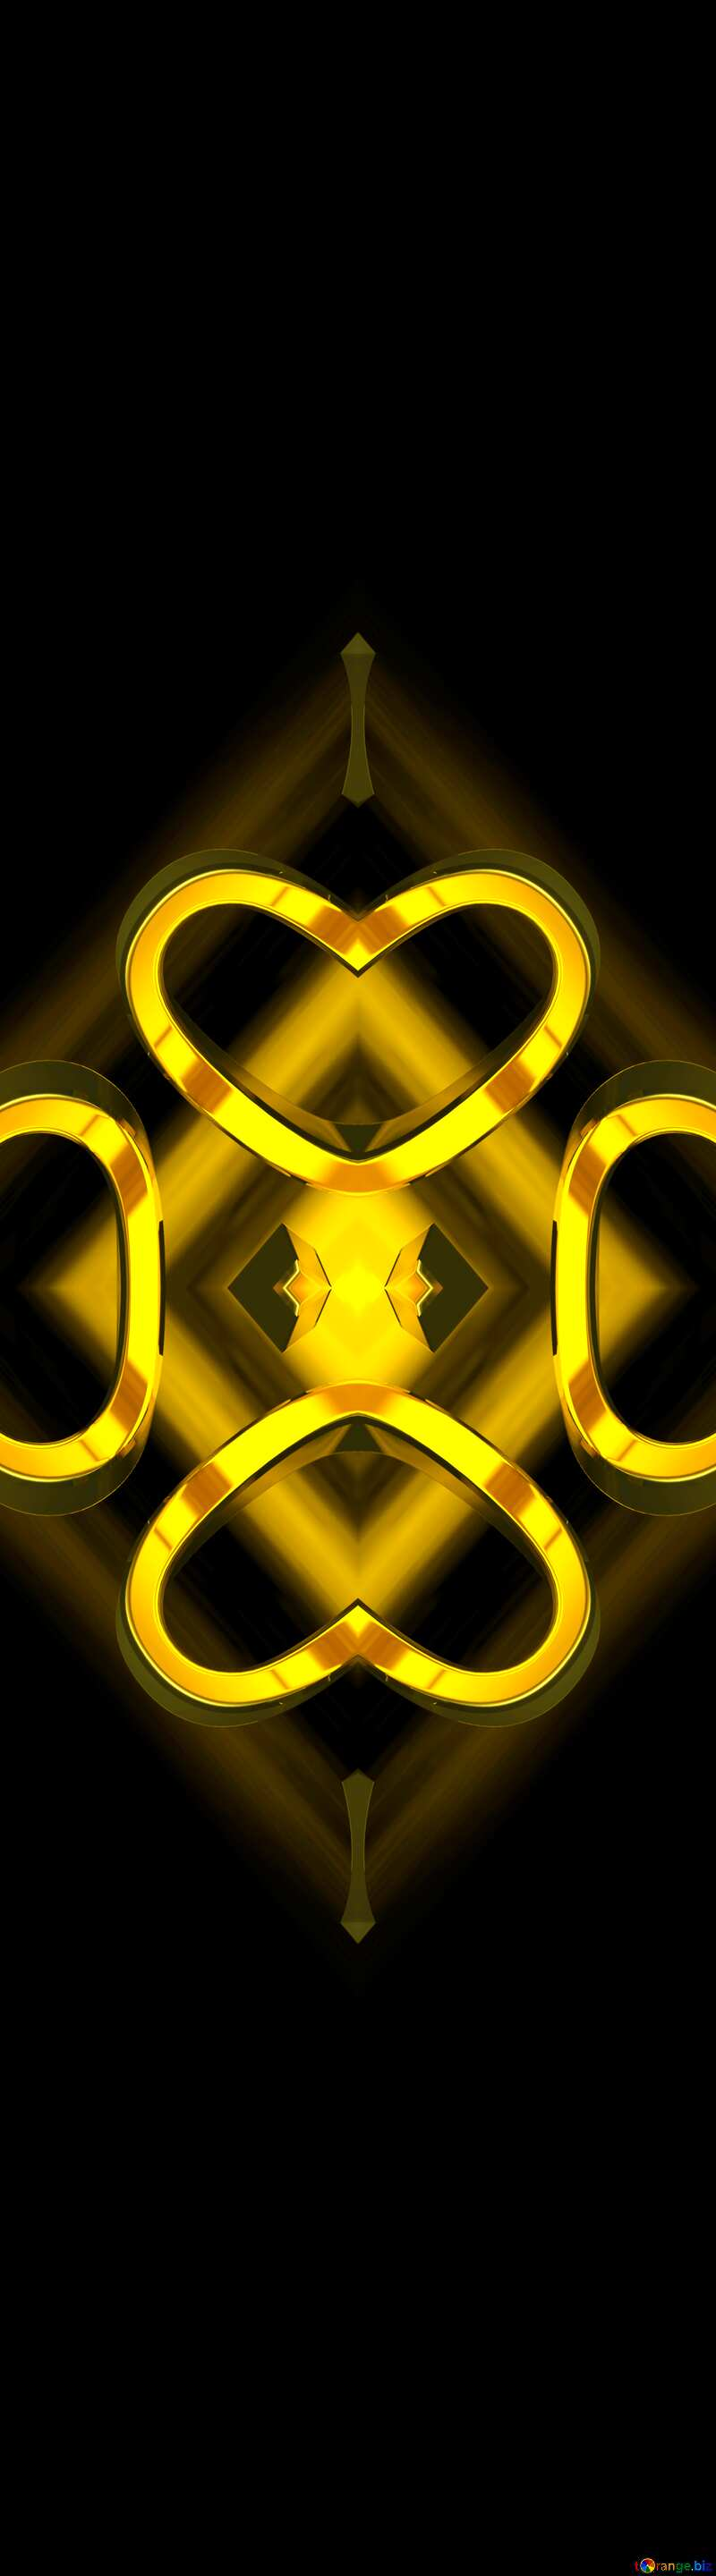 2019 3d render gold digits with reflections dark background isolated Pattern Background №51520